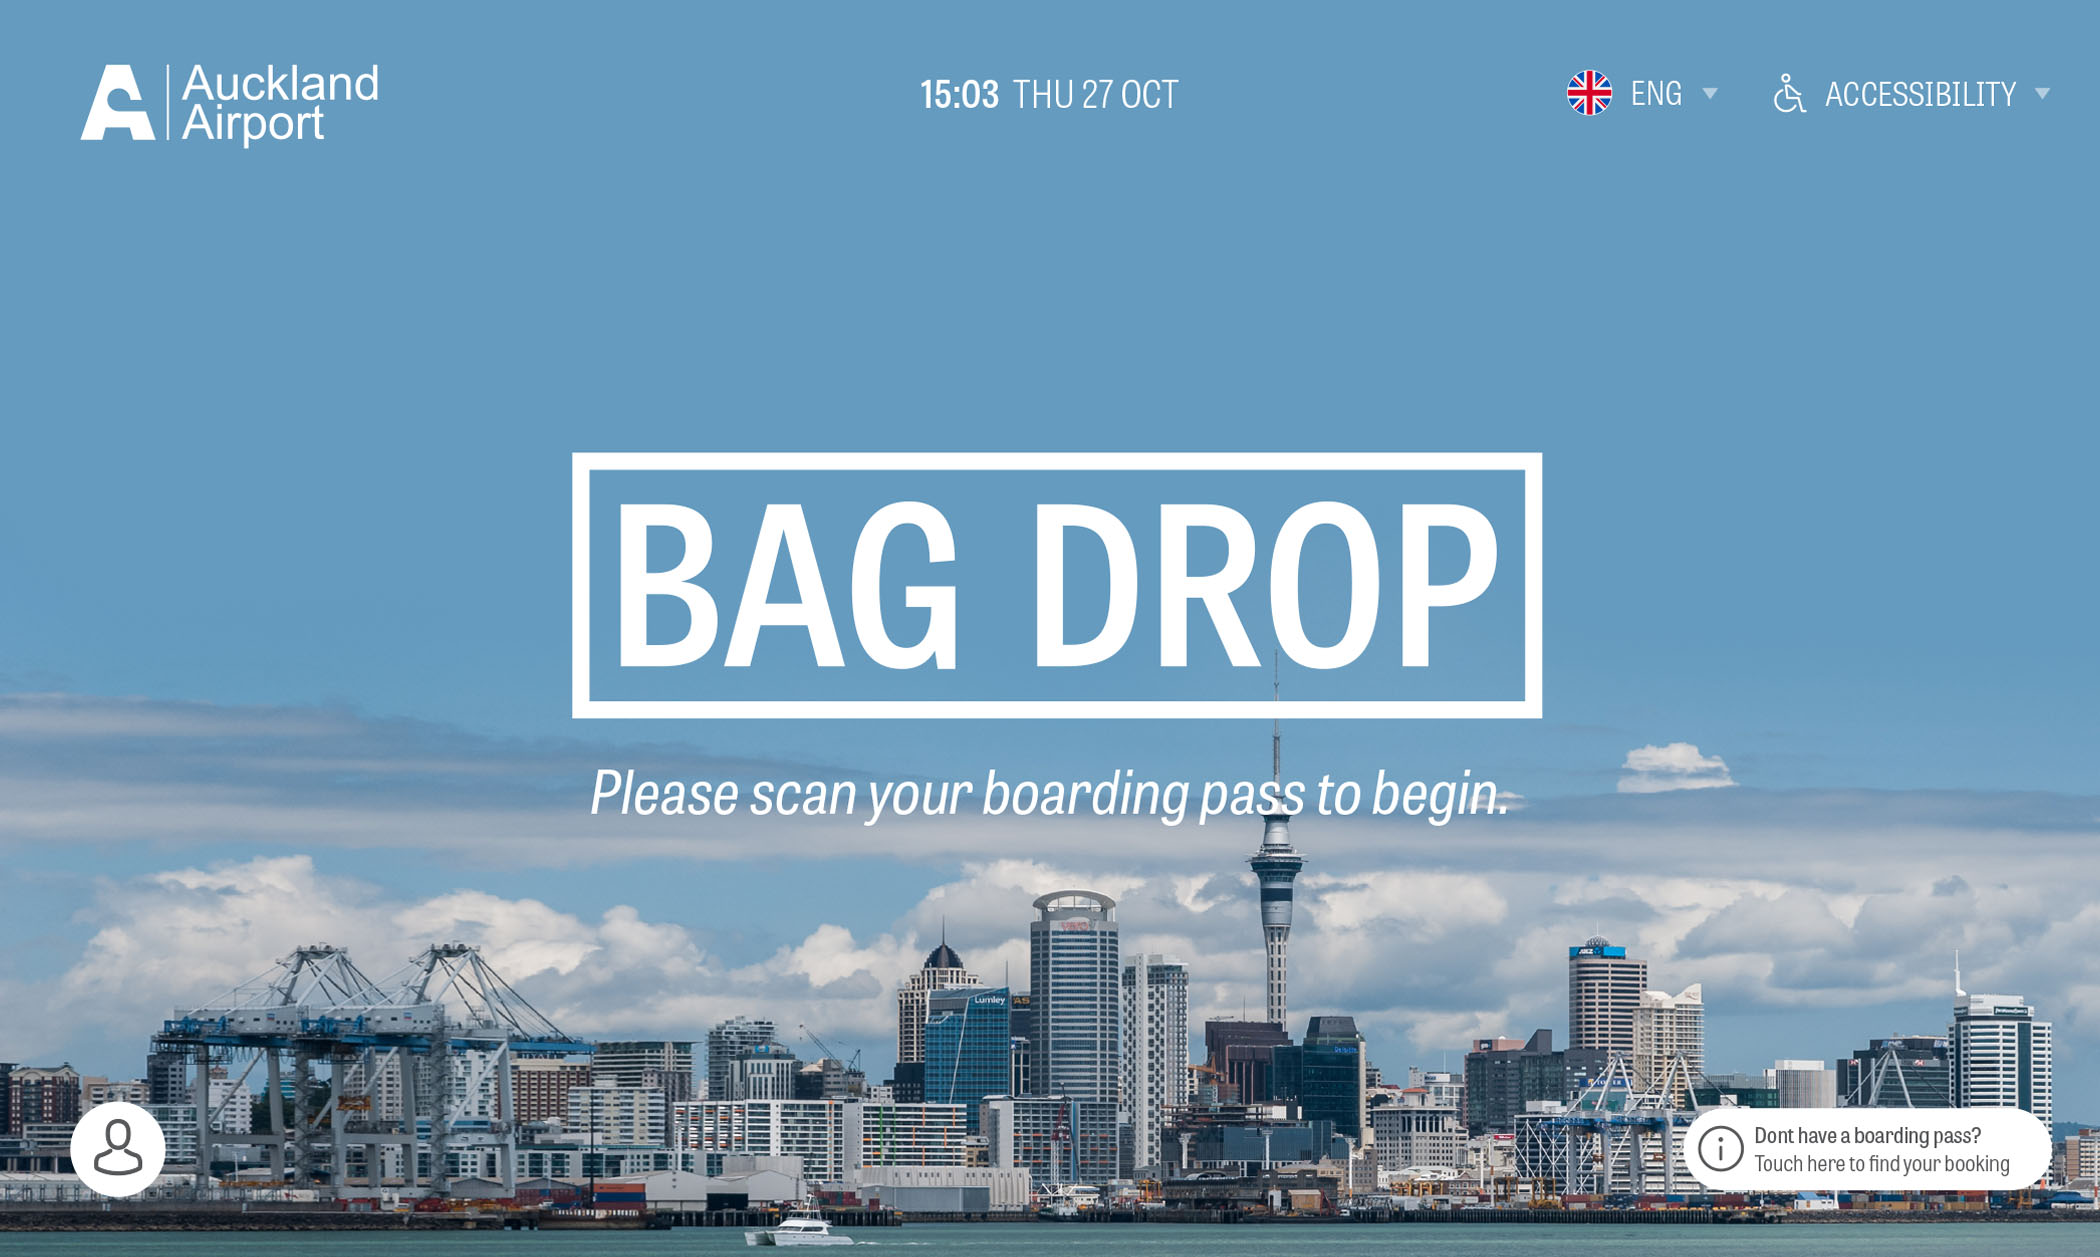 Auckland Airport Bag Drop Application Screen 2